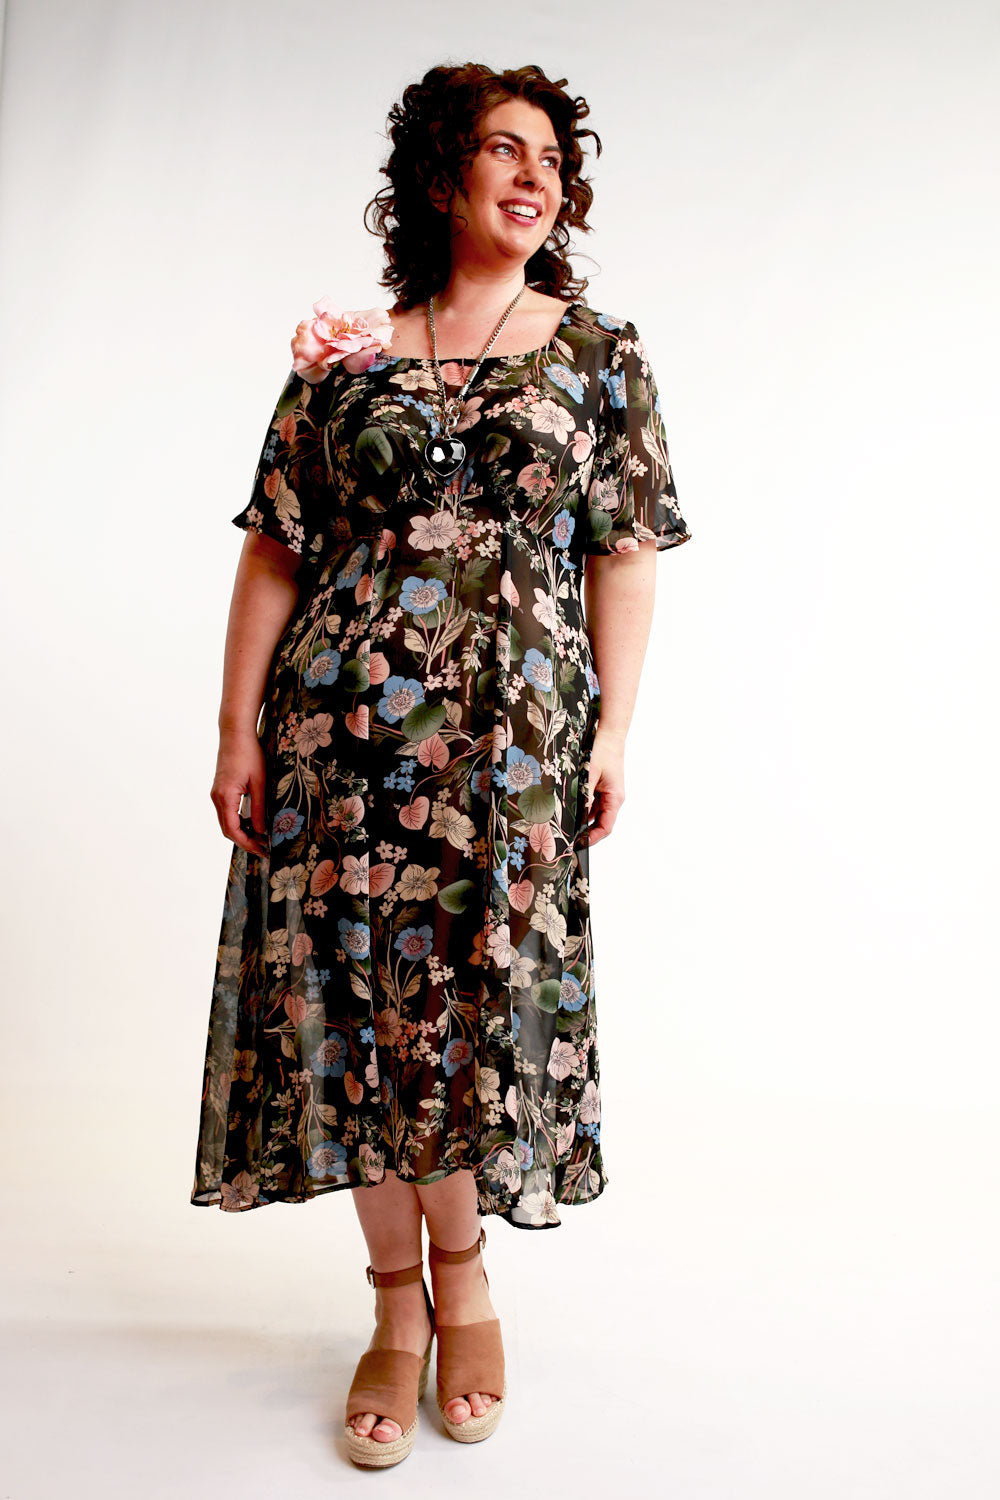 Annah Stretton Black Floral Summer dress